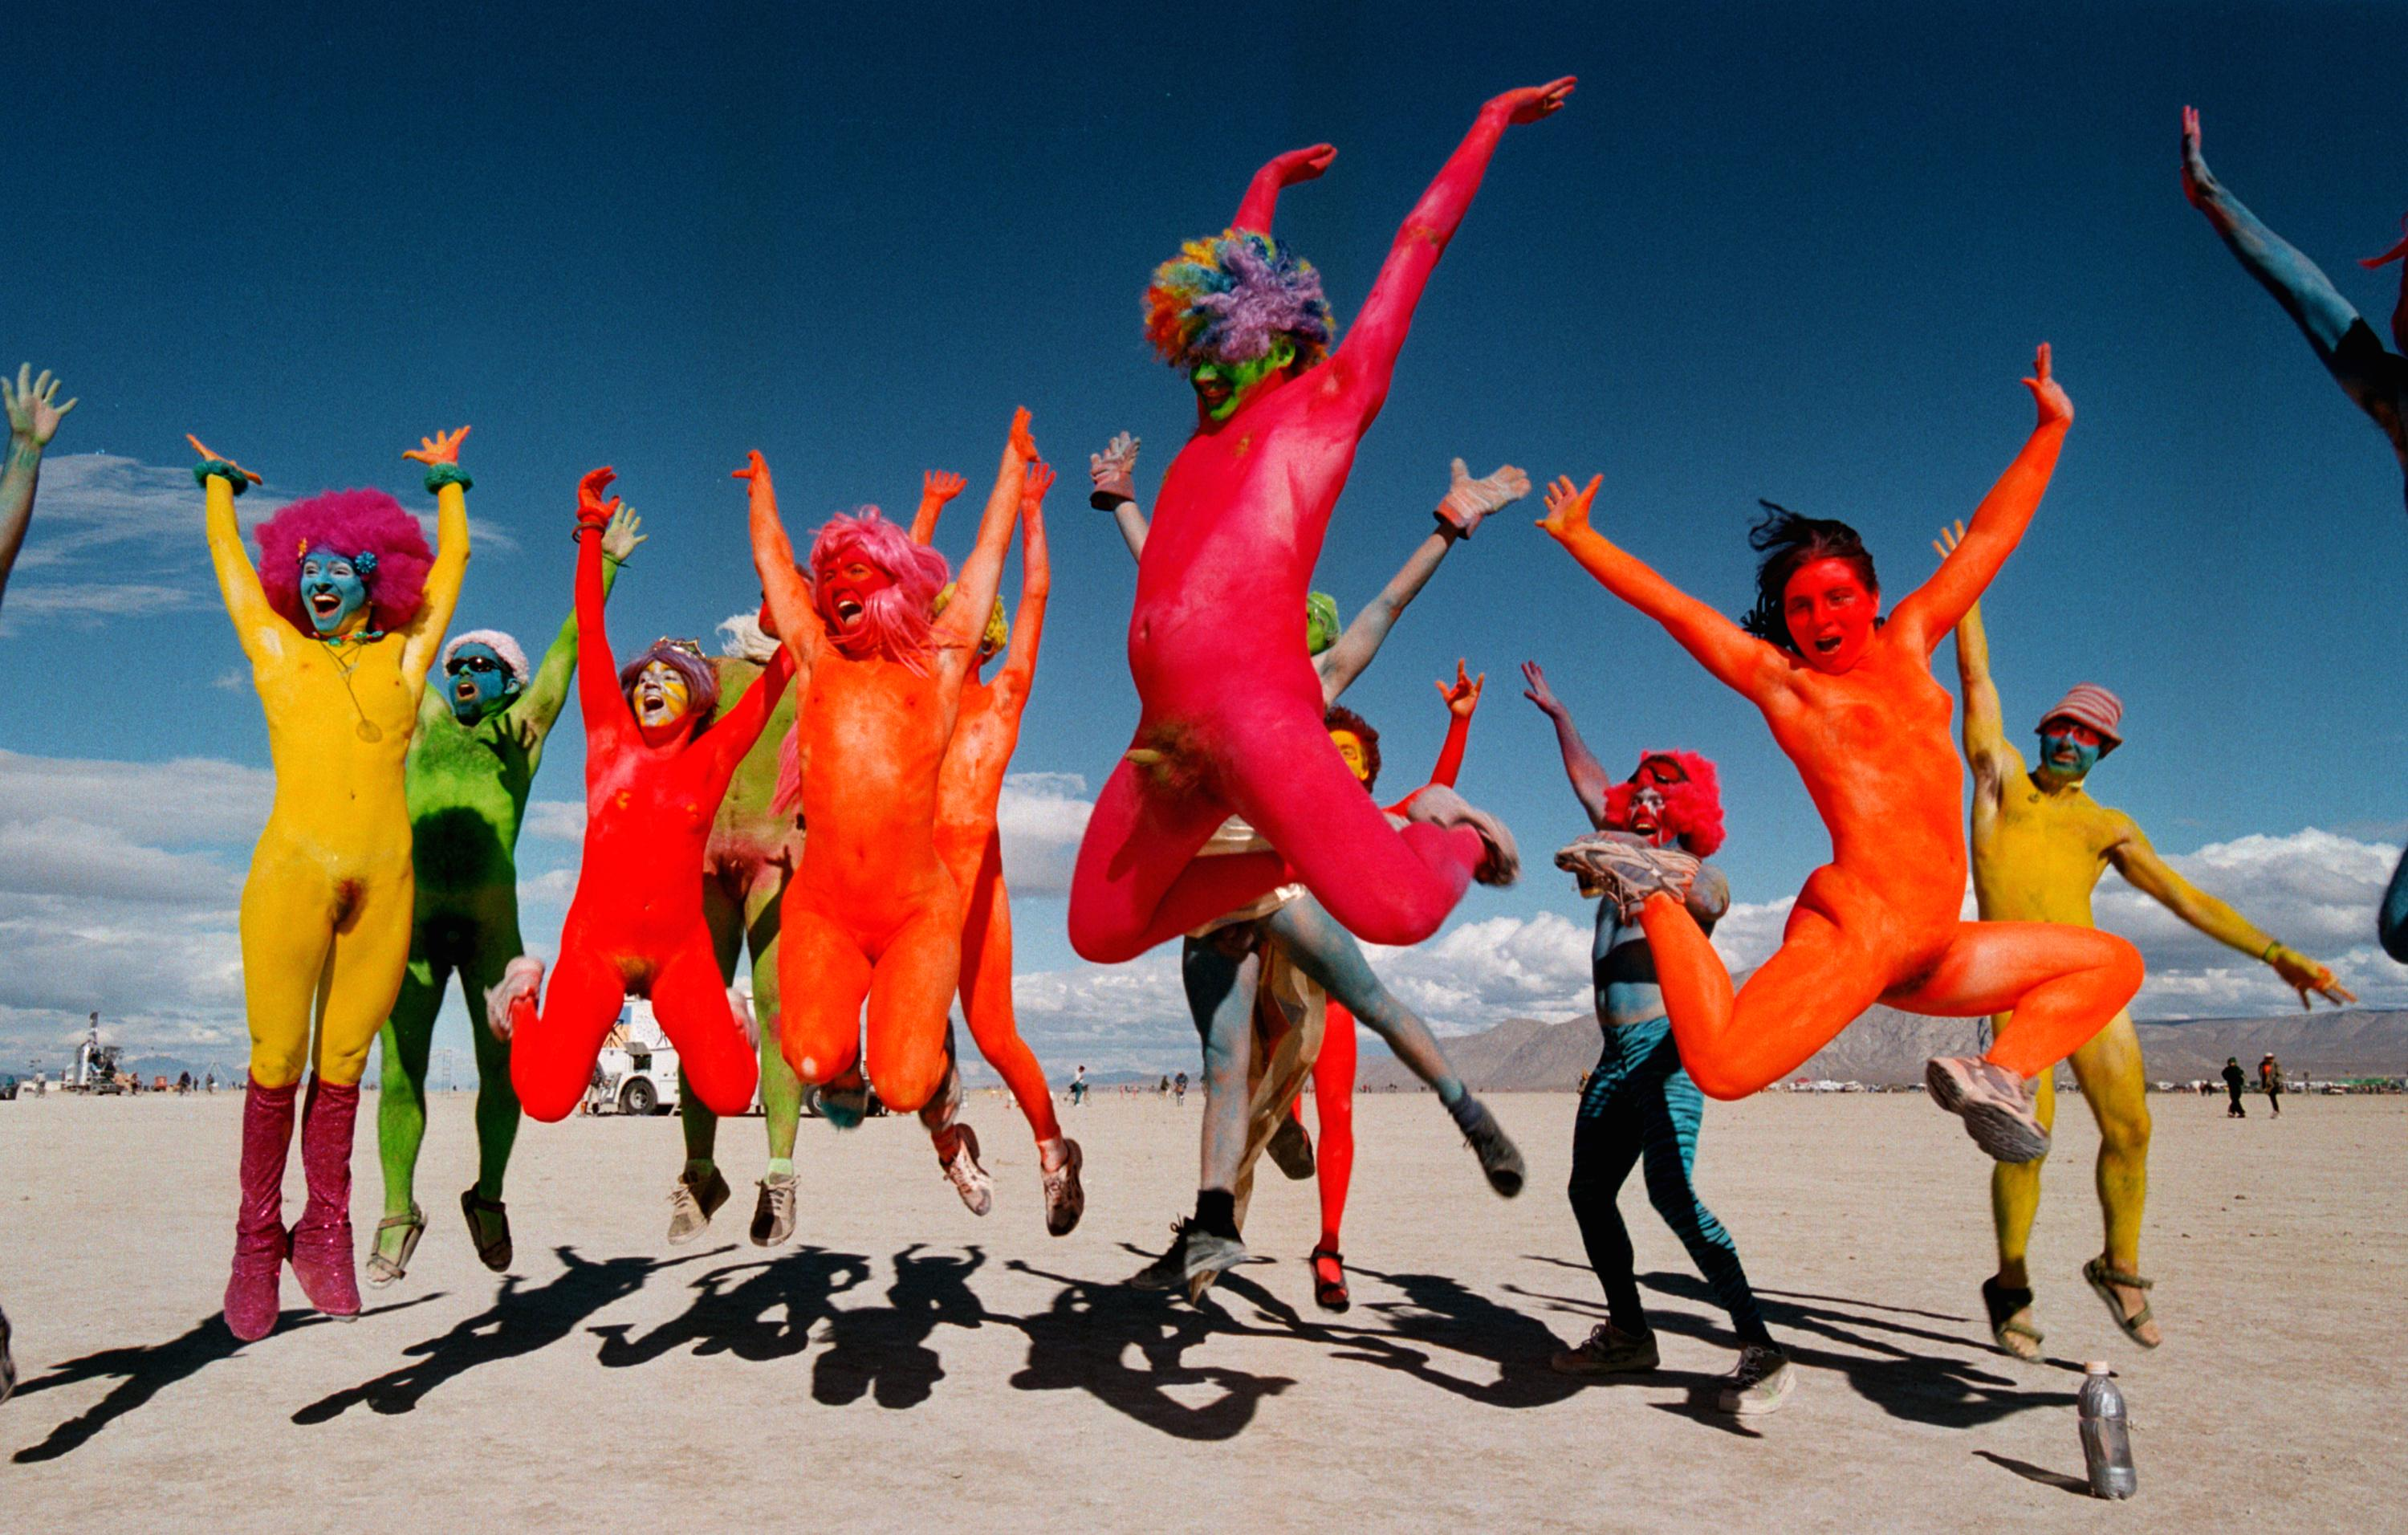 People Did Some Weird Sh*t At Burning Man Festival This Year GettyImages 72501340